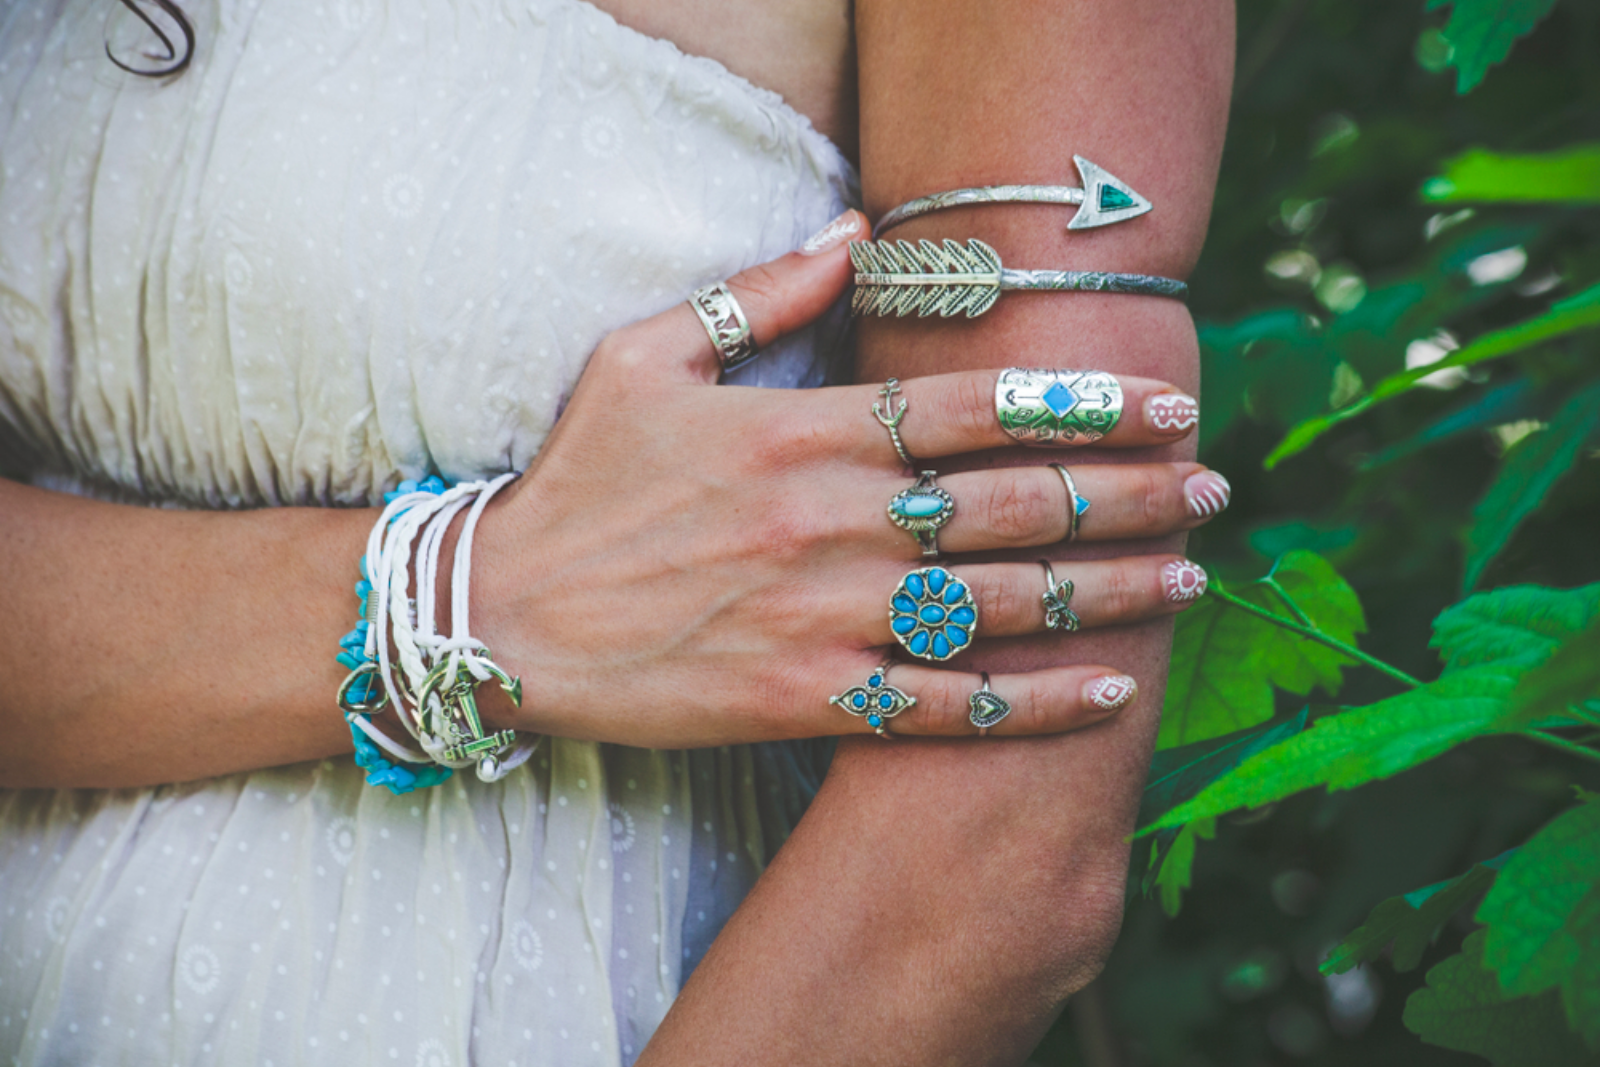 Jewelry Accessories | Your Guide To Fashion Jewelry Styles & Accessories